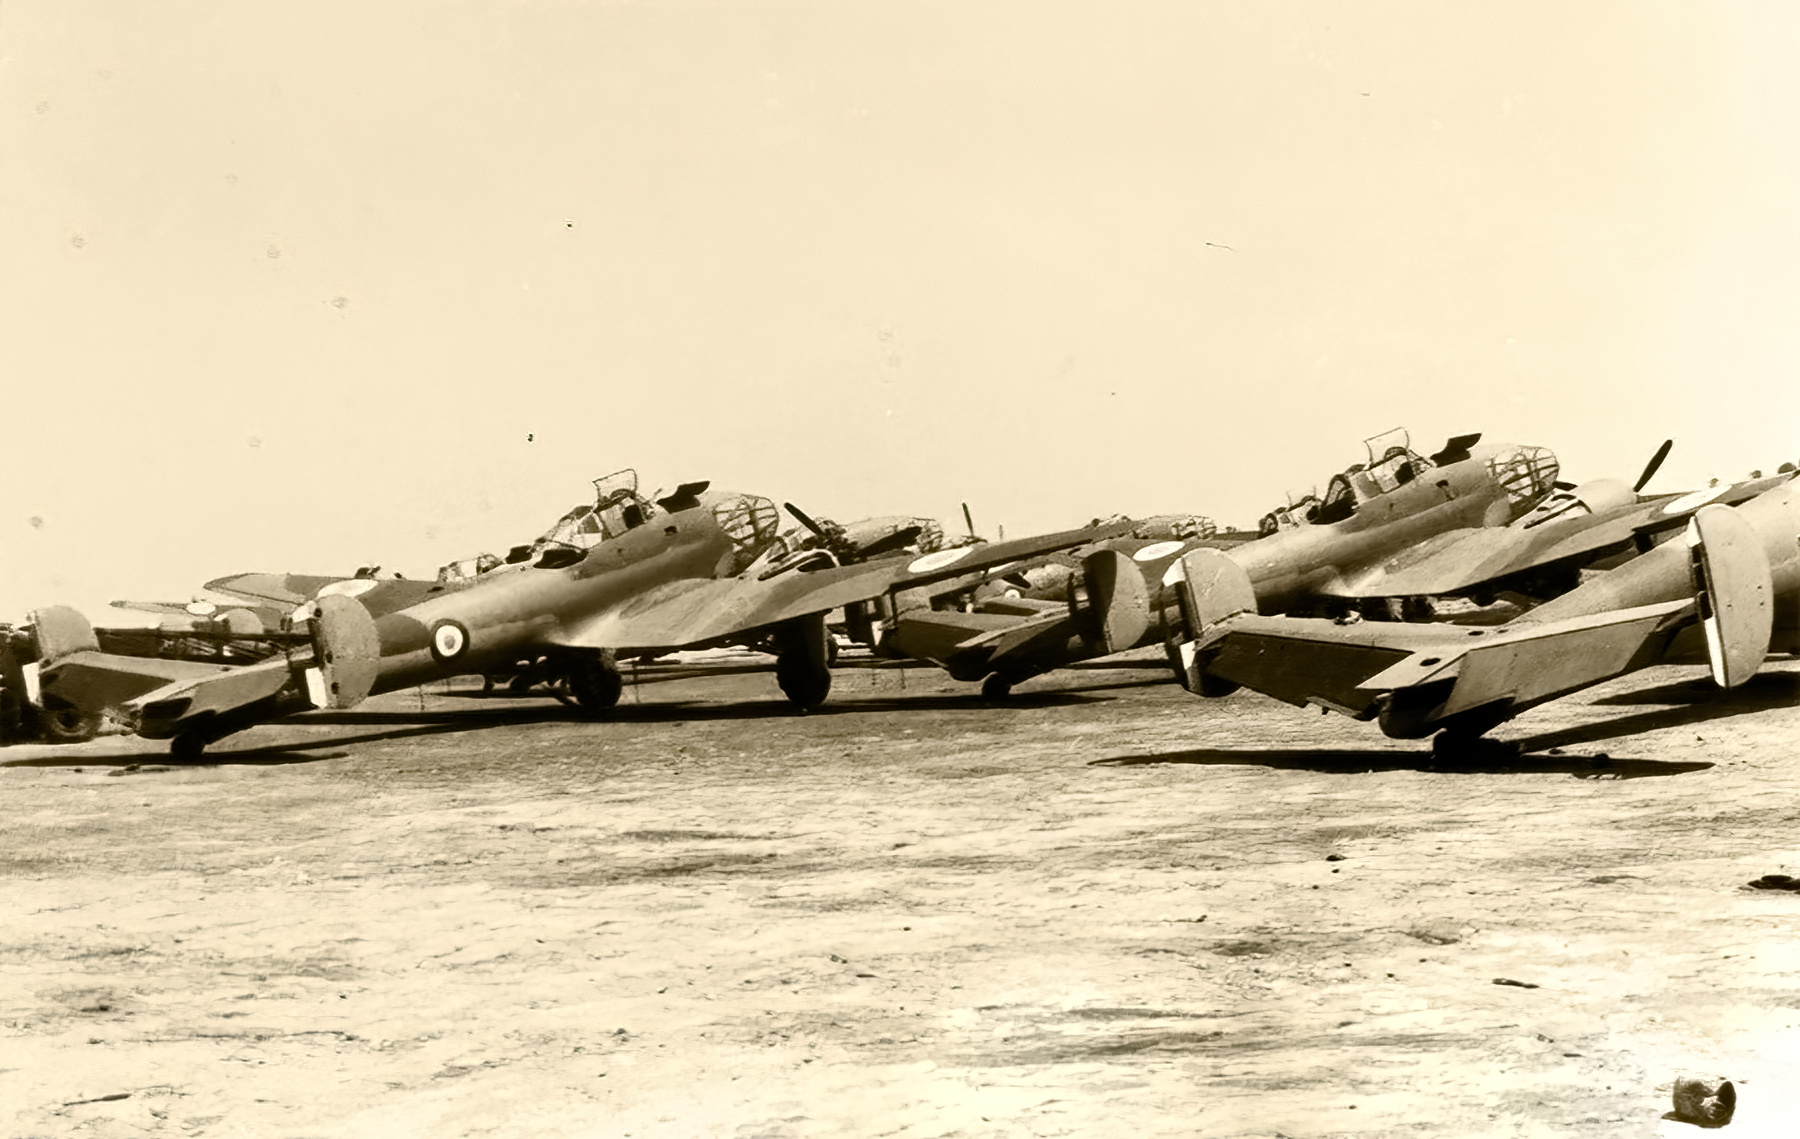 French Airforce Potez 63.11 await thier fate after Frances capitulation 25th June 1940 ebay 01